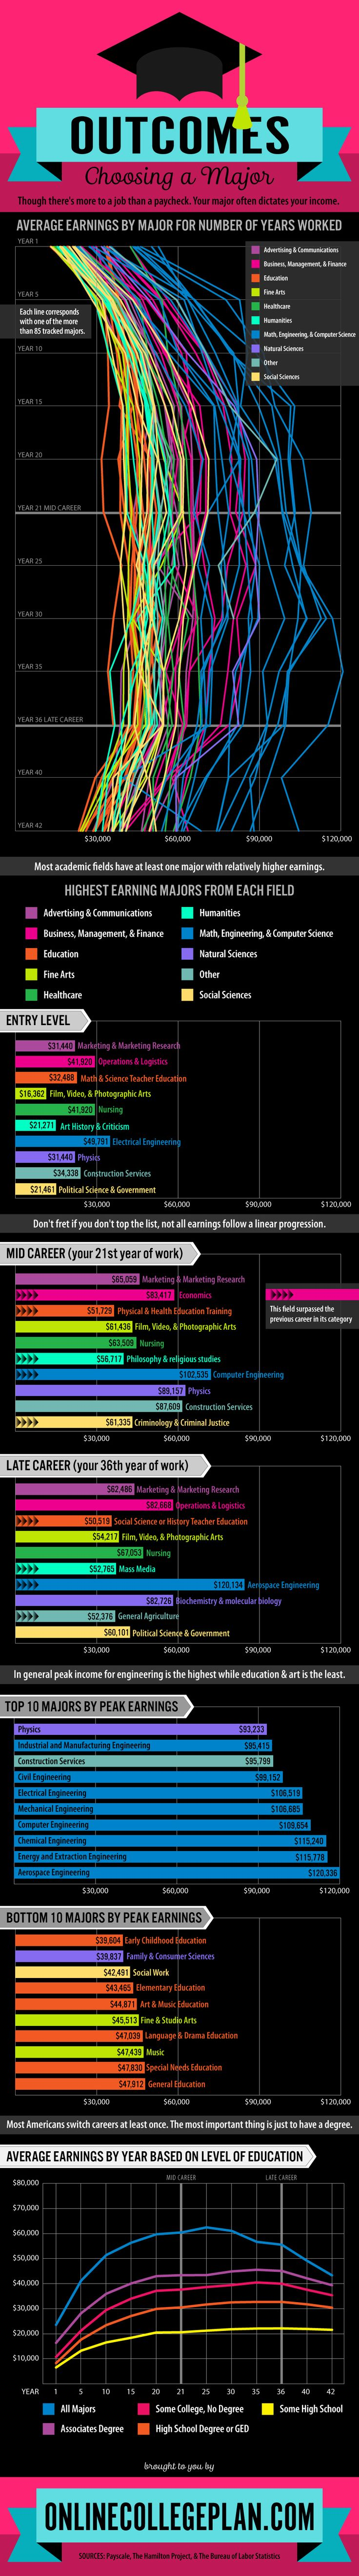 shared by resumeexpert com how to choose your major com 10084 how to choose your major based on salary infographic aftercollege good to know colors to die for and